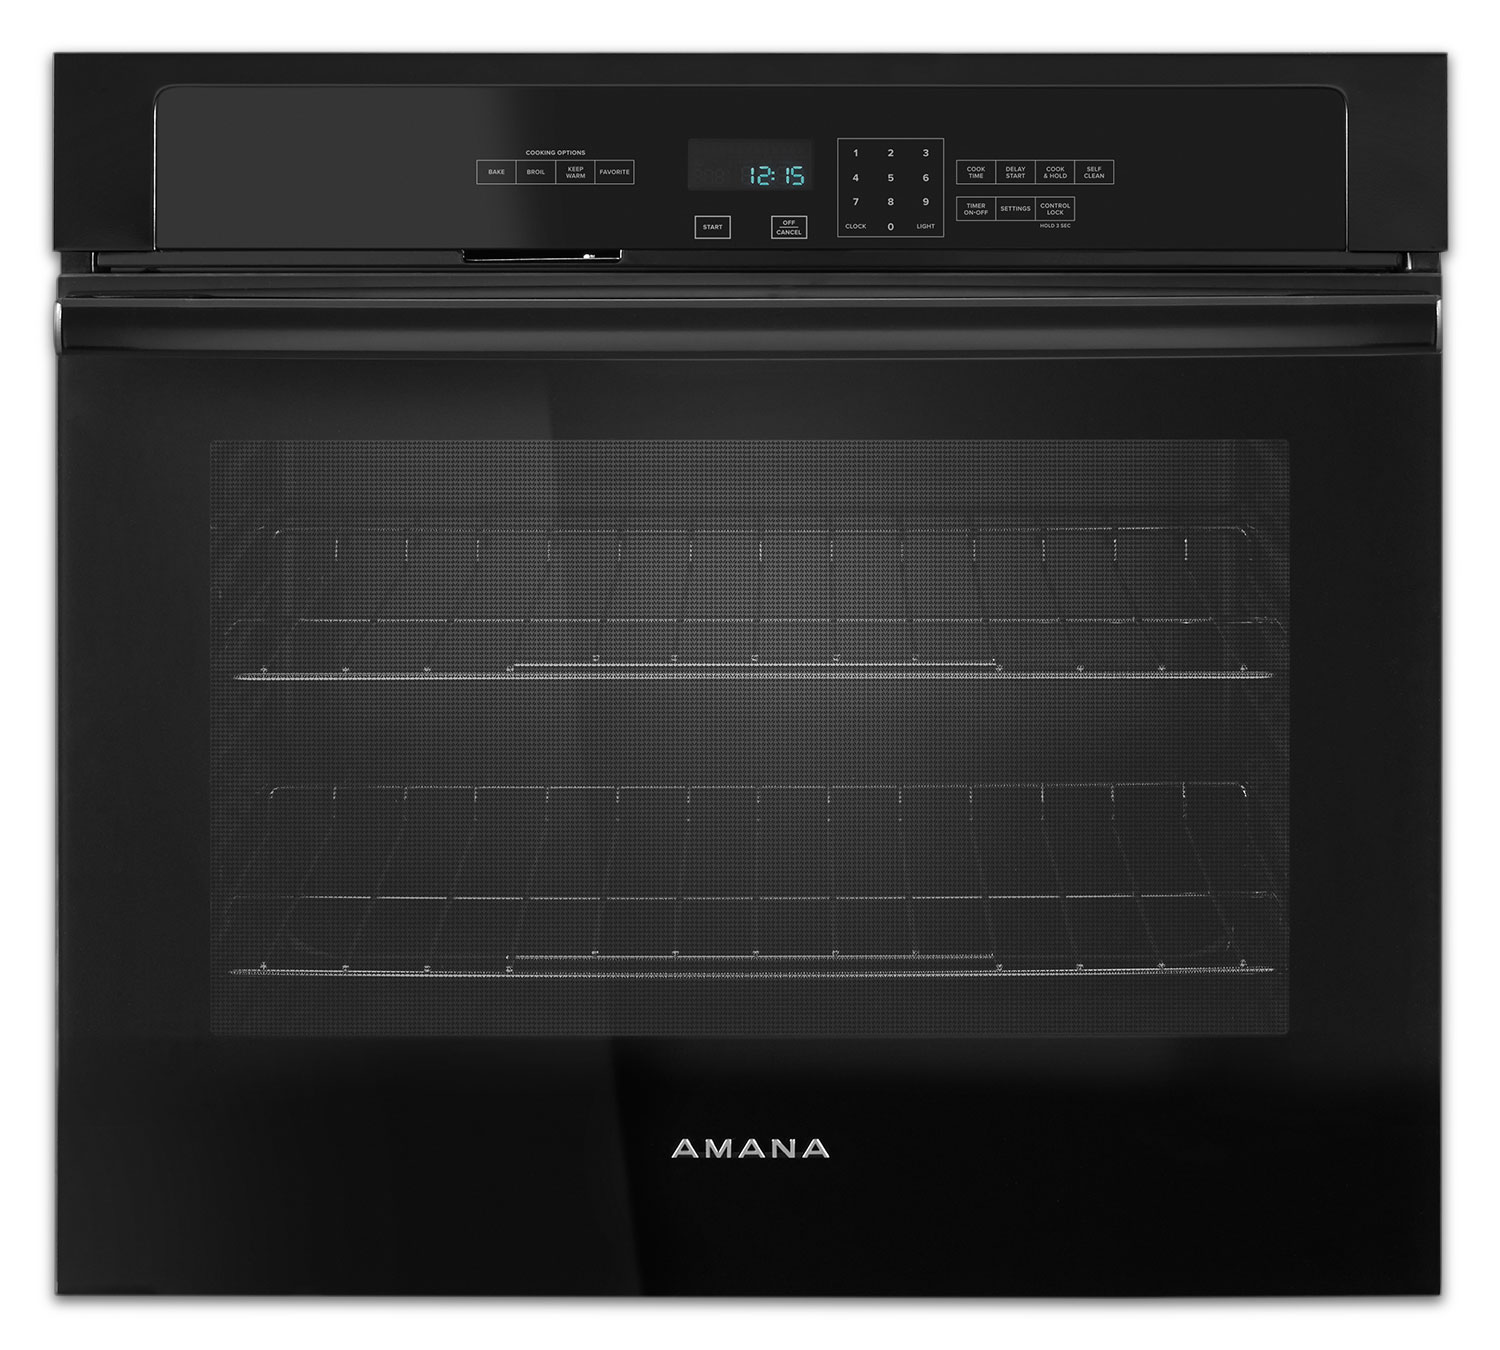 Cooking Products - Amana Black Electric Wall Oven (5.0 Cu. Ft.) - AWO6313SFB